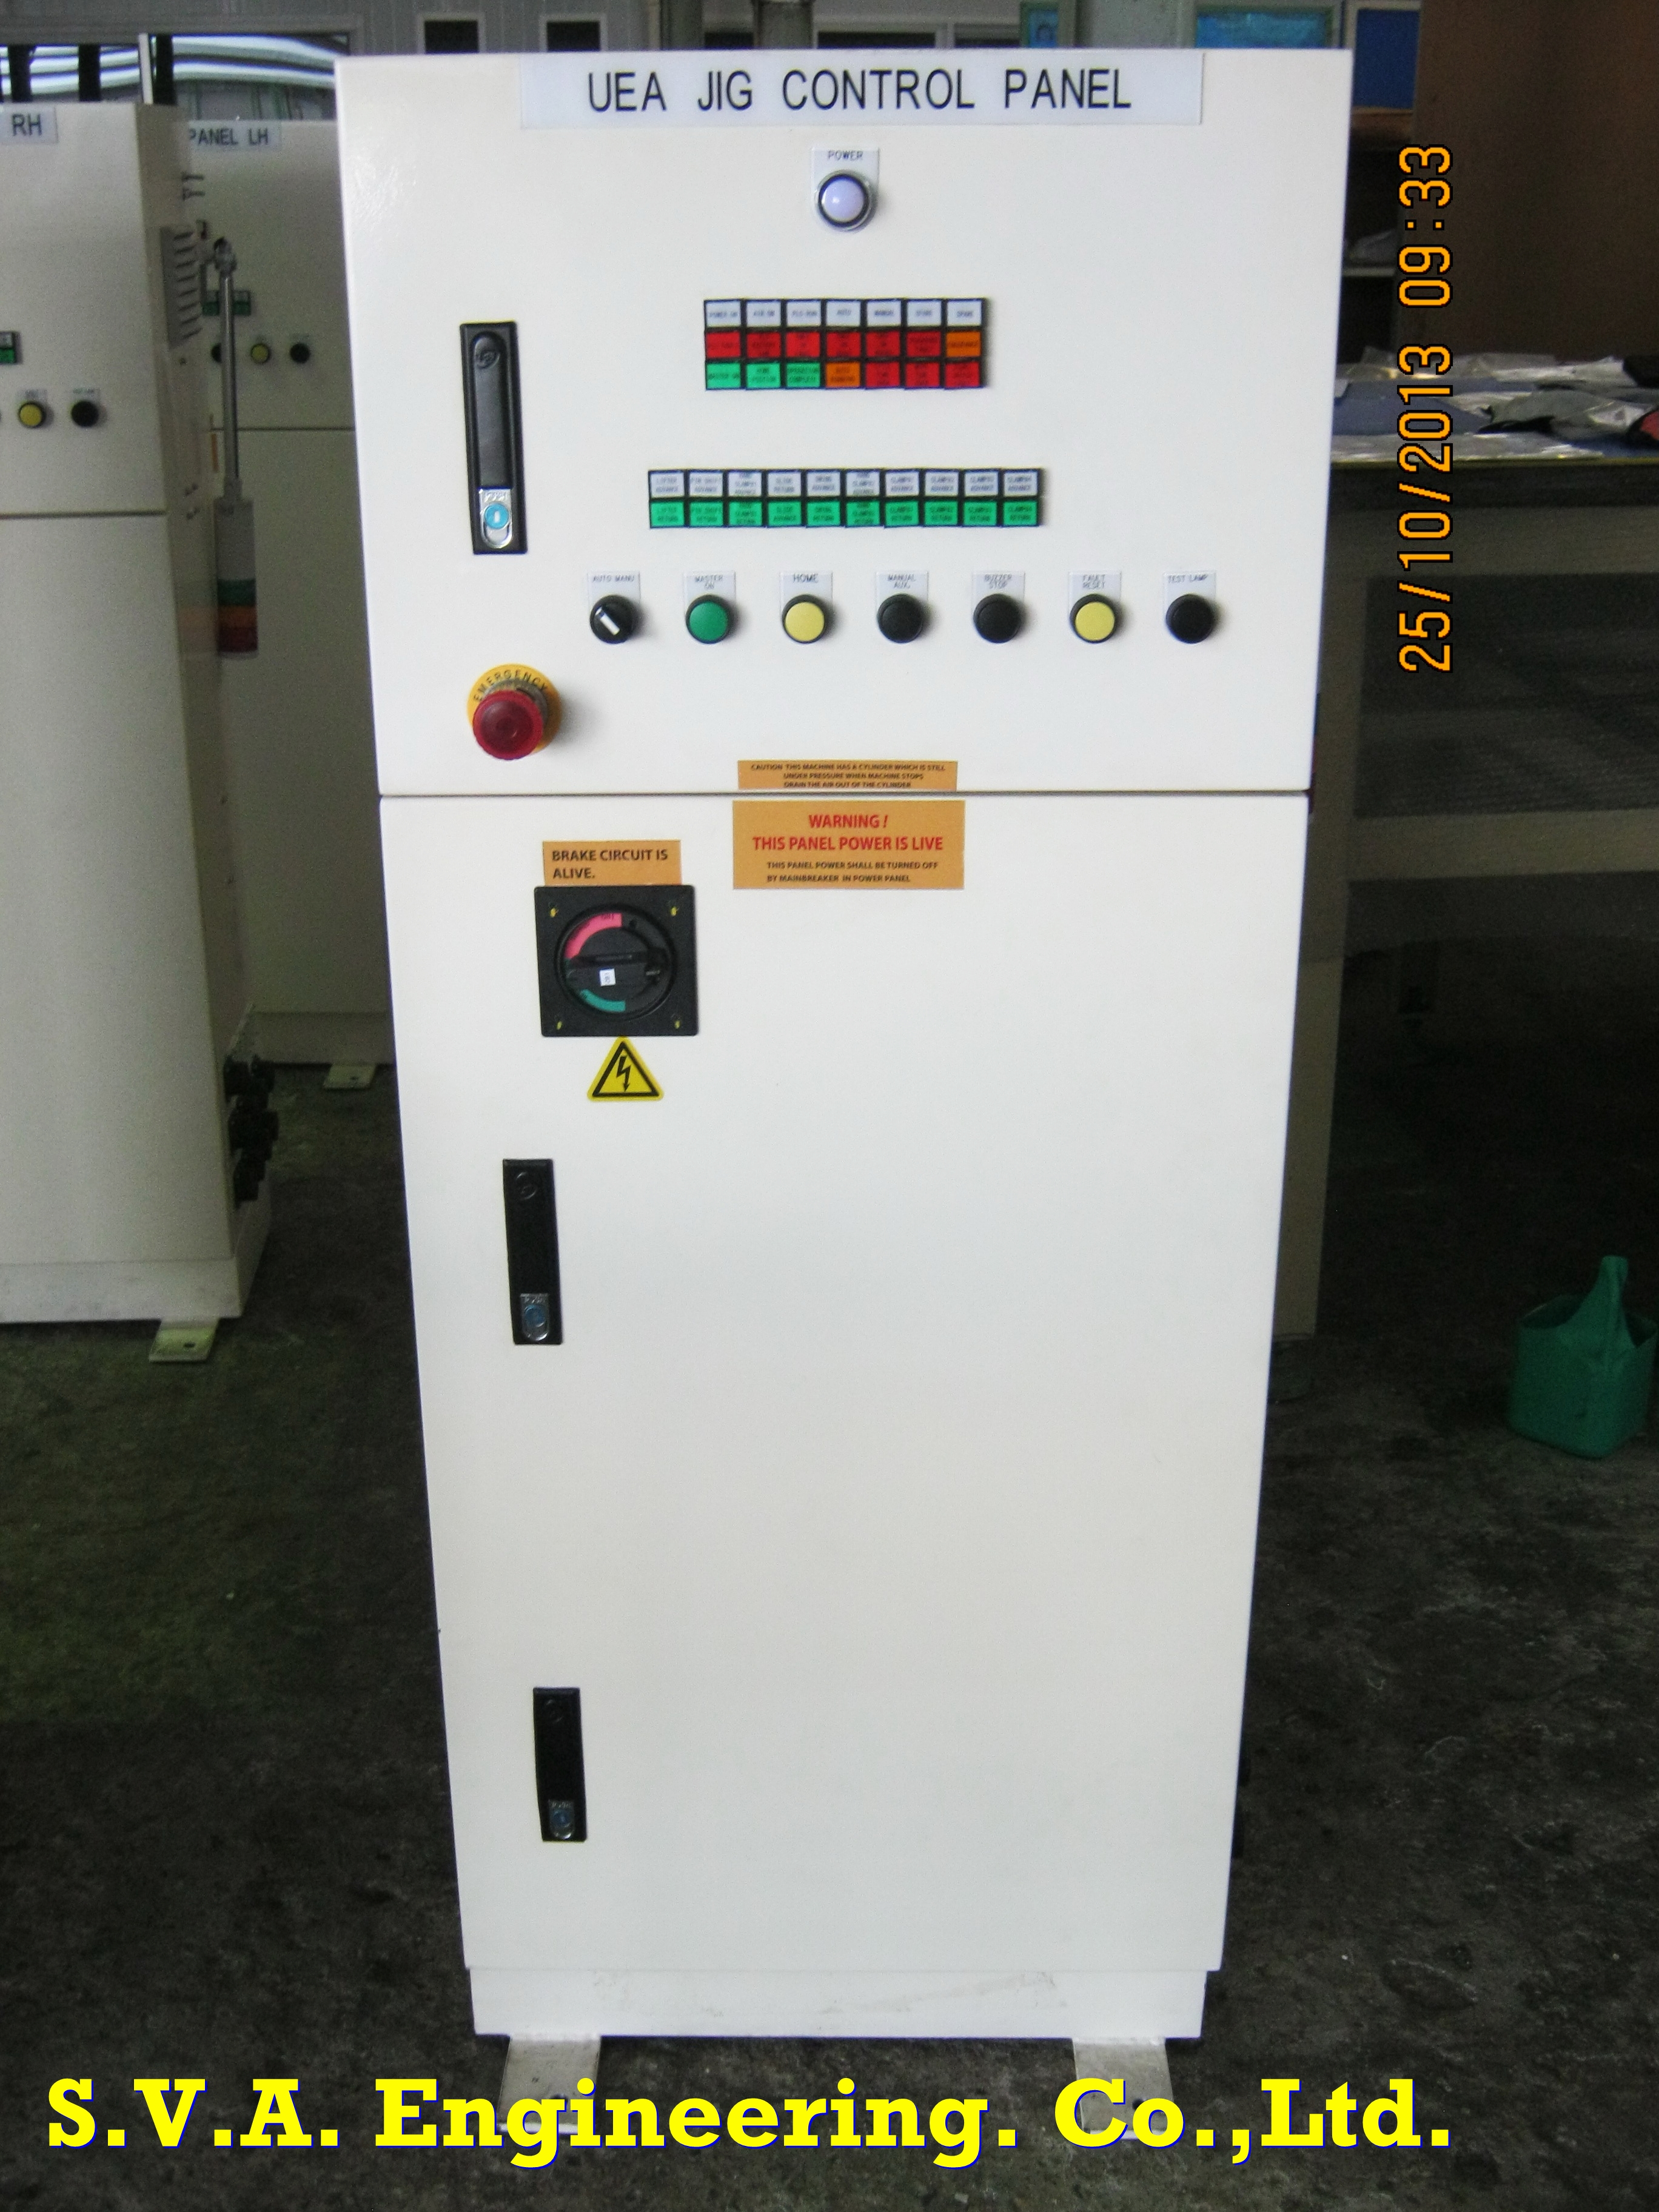 Control System for Jig by PLC